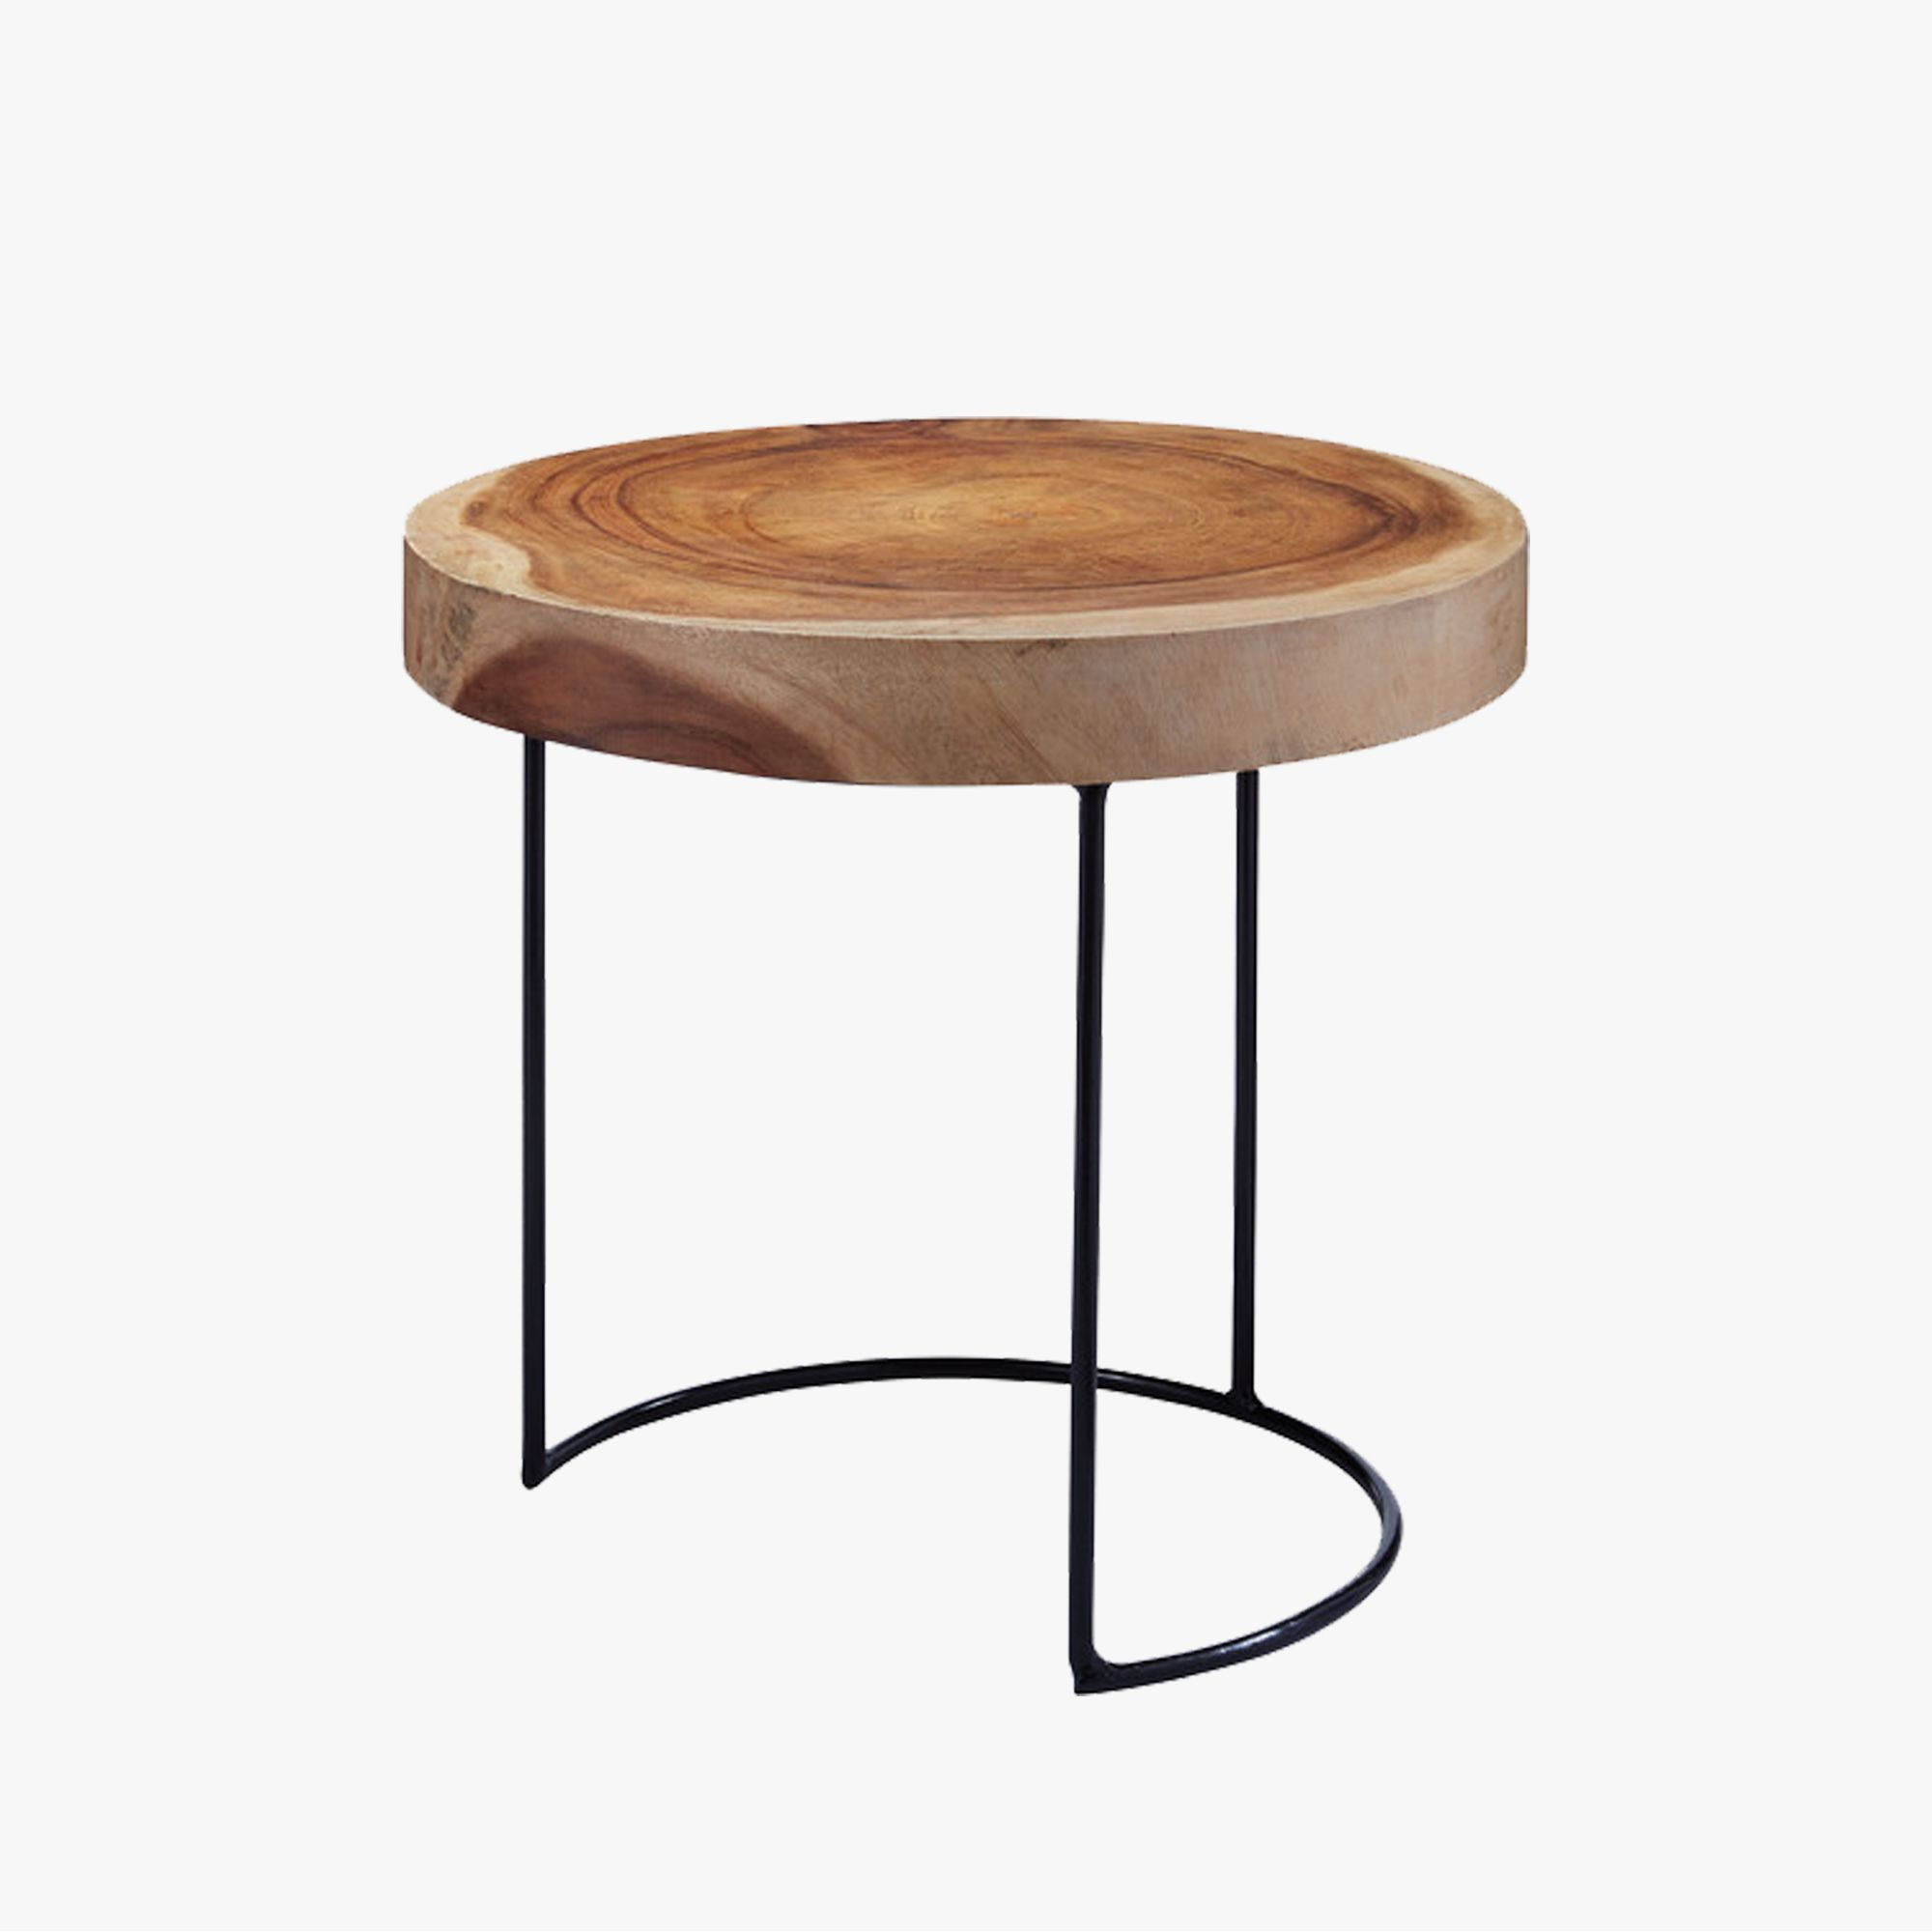 This Round Suar Wood Accent Table With Iron Legs Adds An Organic Vibe To  Any Space. The Beautiful Wood Grain Is Juxtaposed With A Simple Curved Iron  Base.